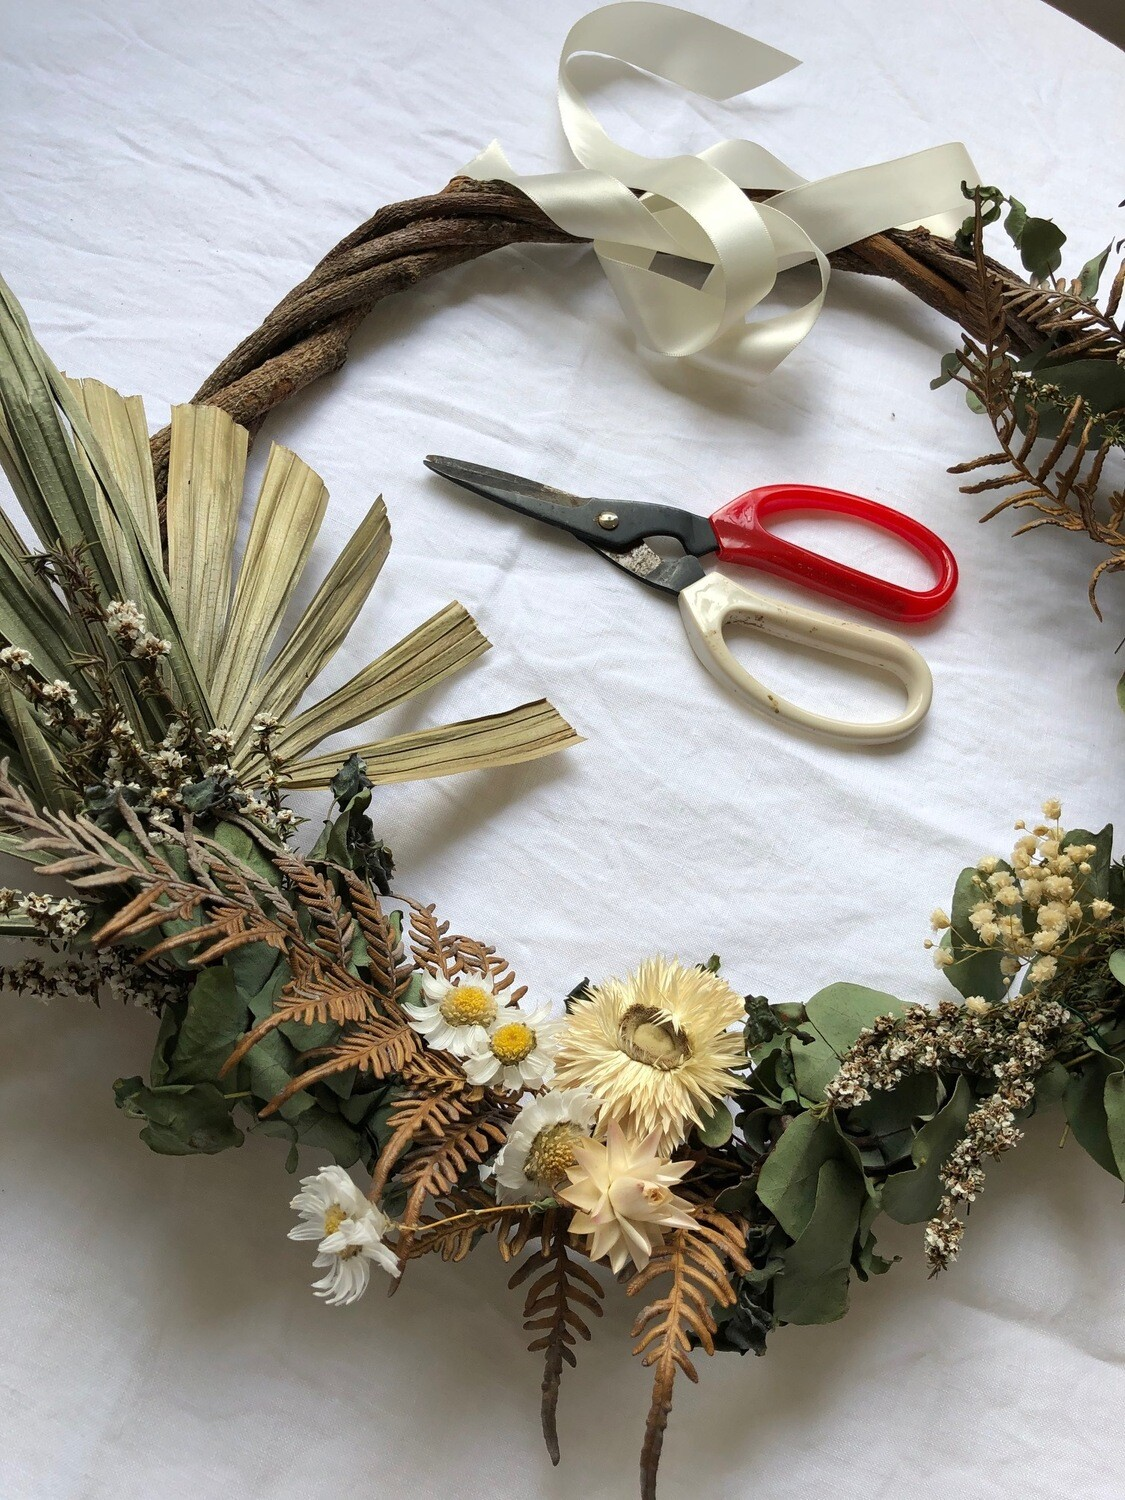 Wreath Workshop - Returning Customer Sunday 6th December at 9:30am